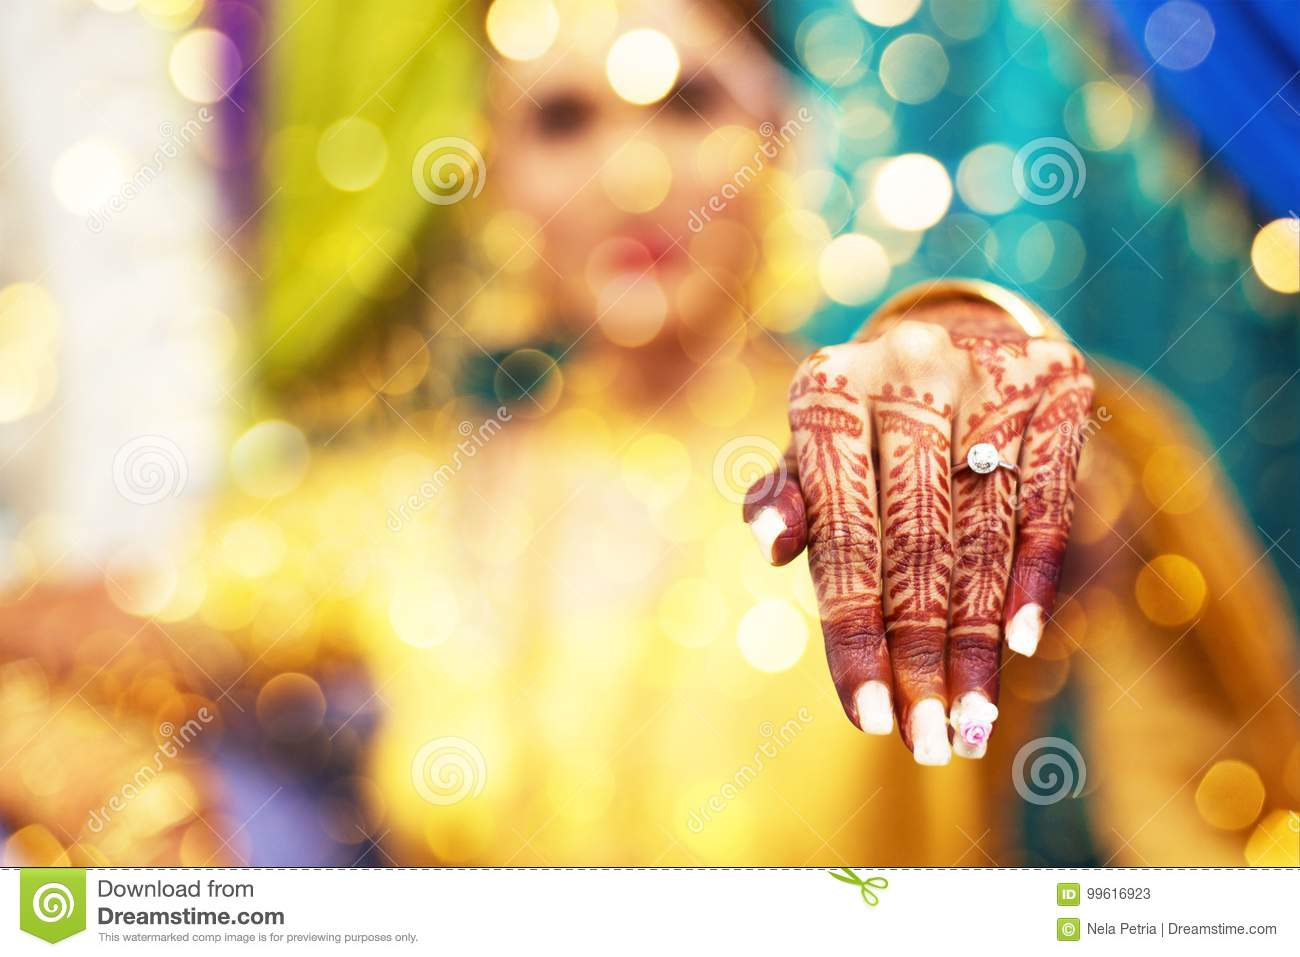 Henna Tattoo Indian Bride Stock Image Image Of Love 99616923